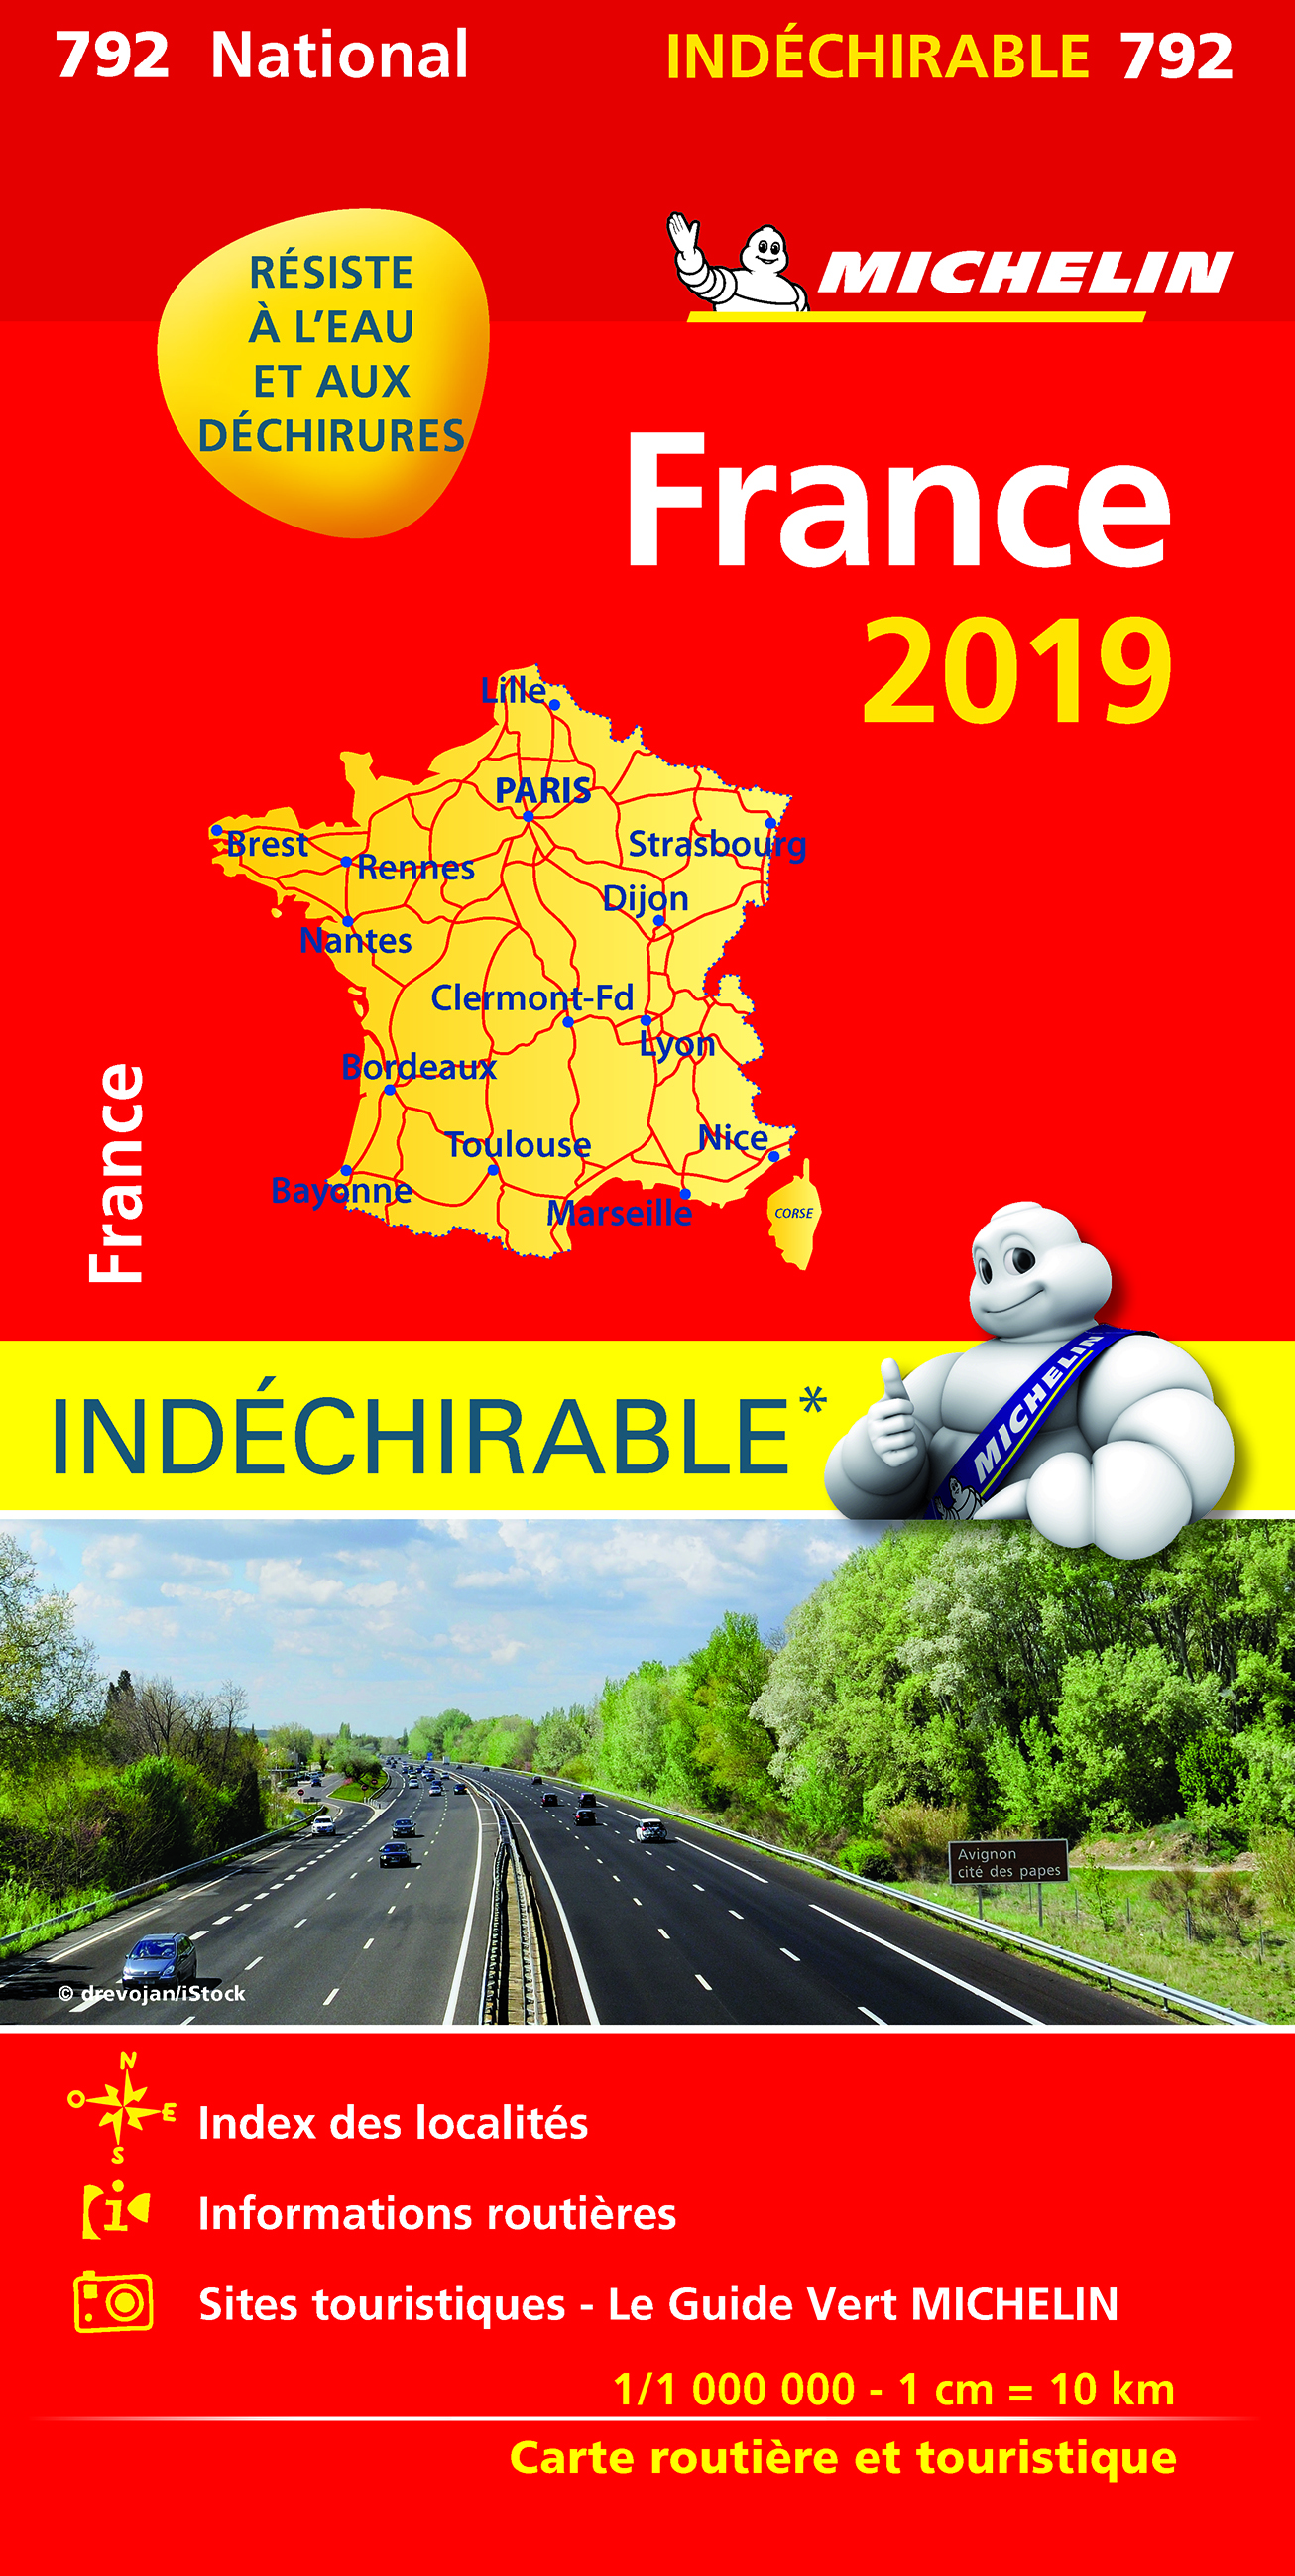 CARTE NATIONALE 792 FRANCE INDECHIRABLE 2019